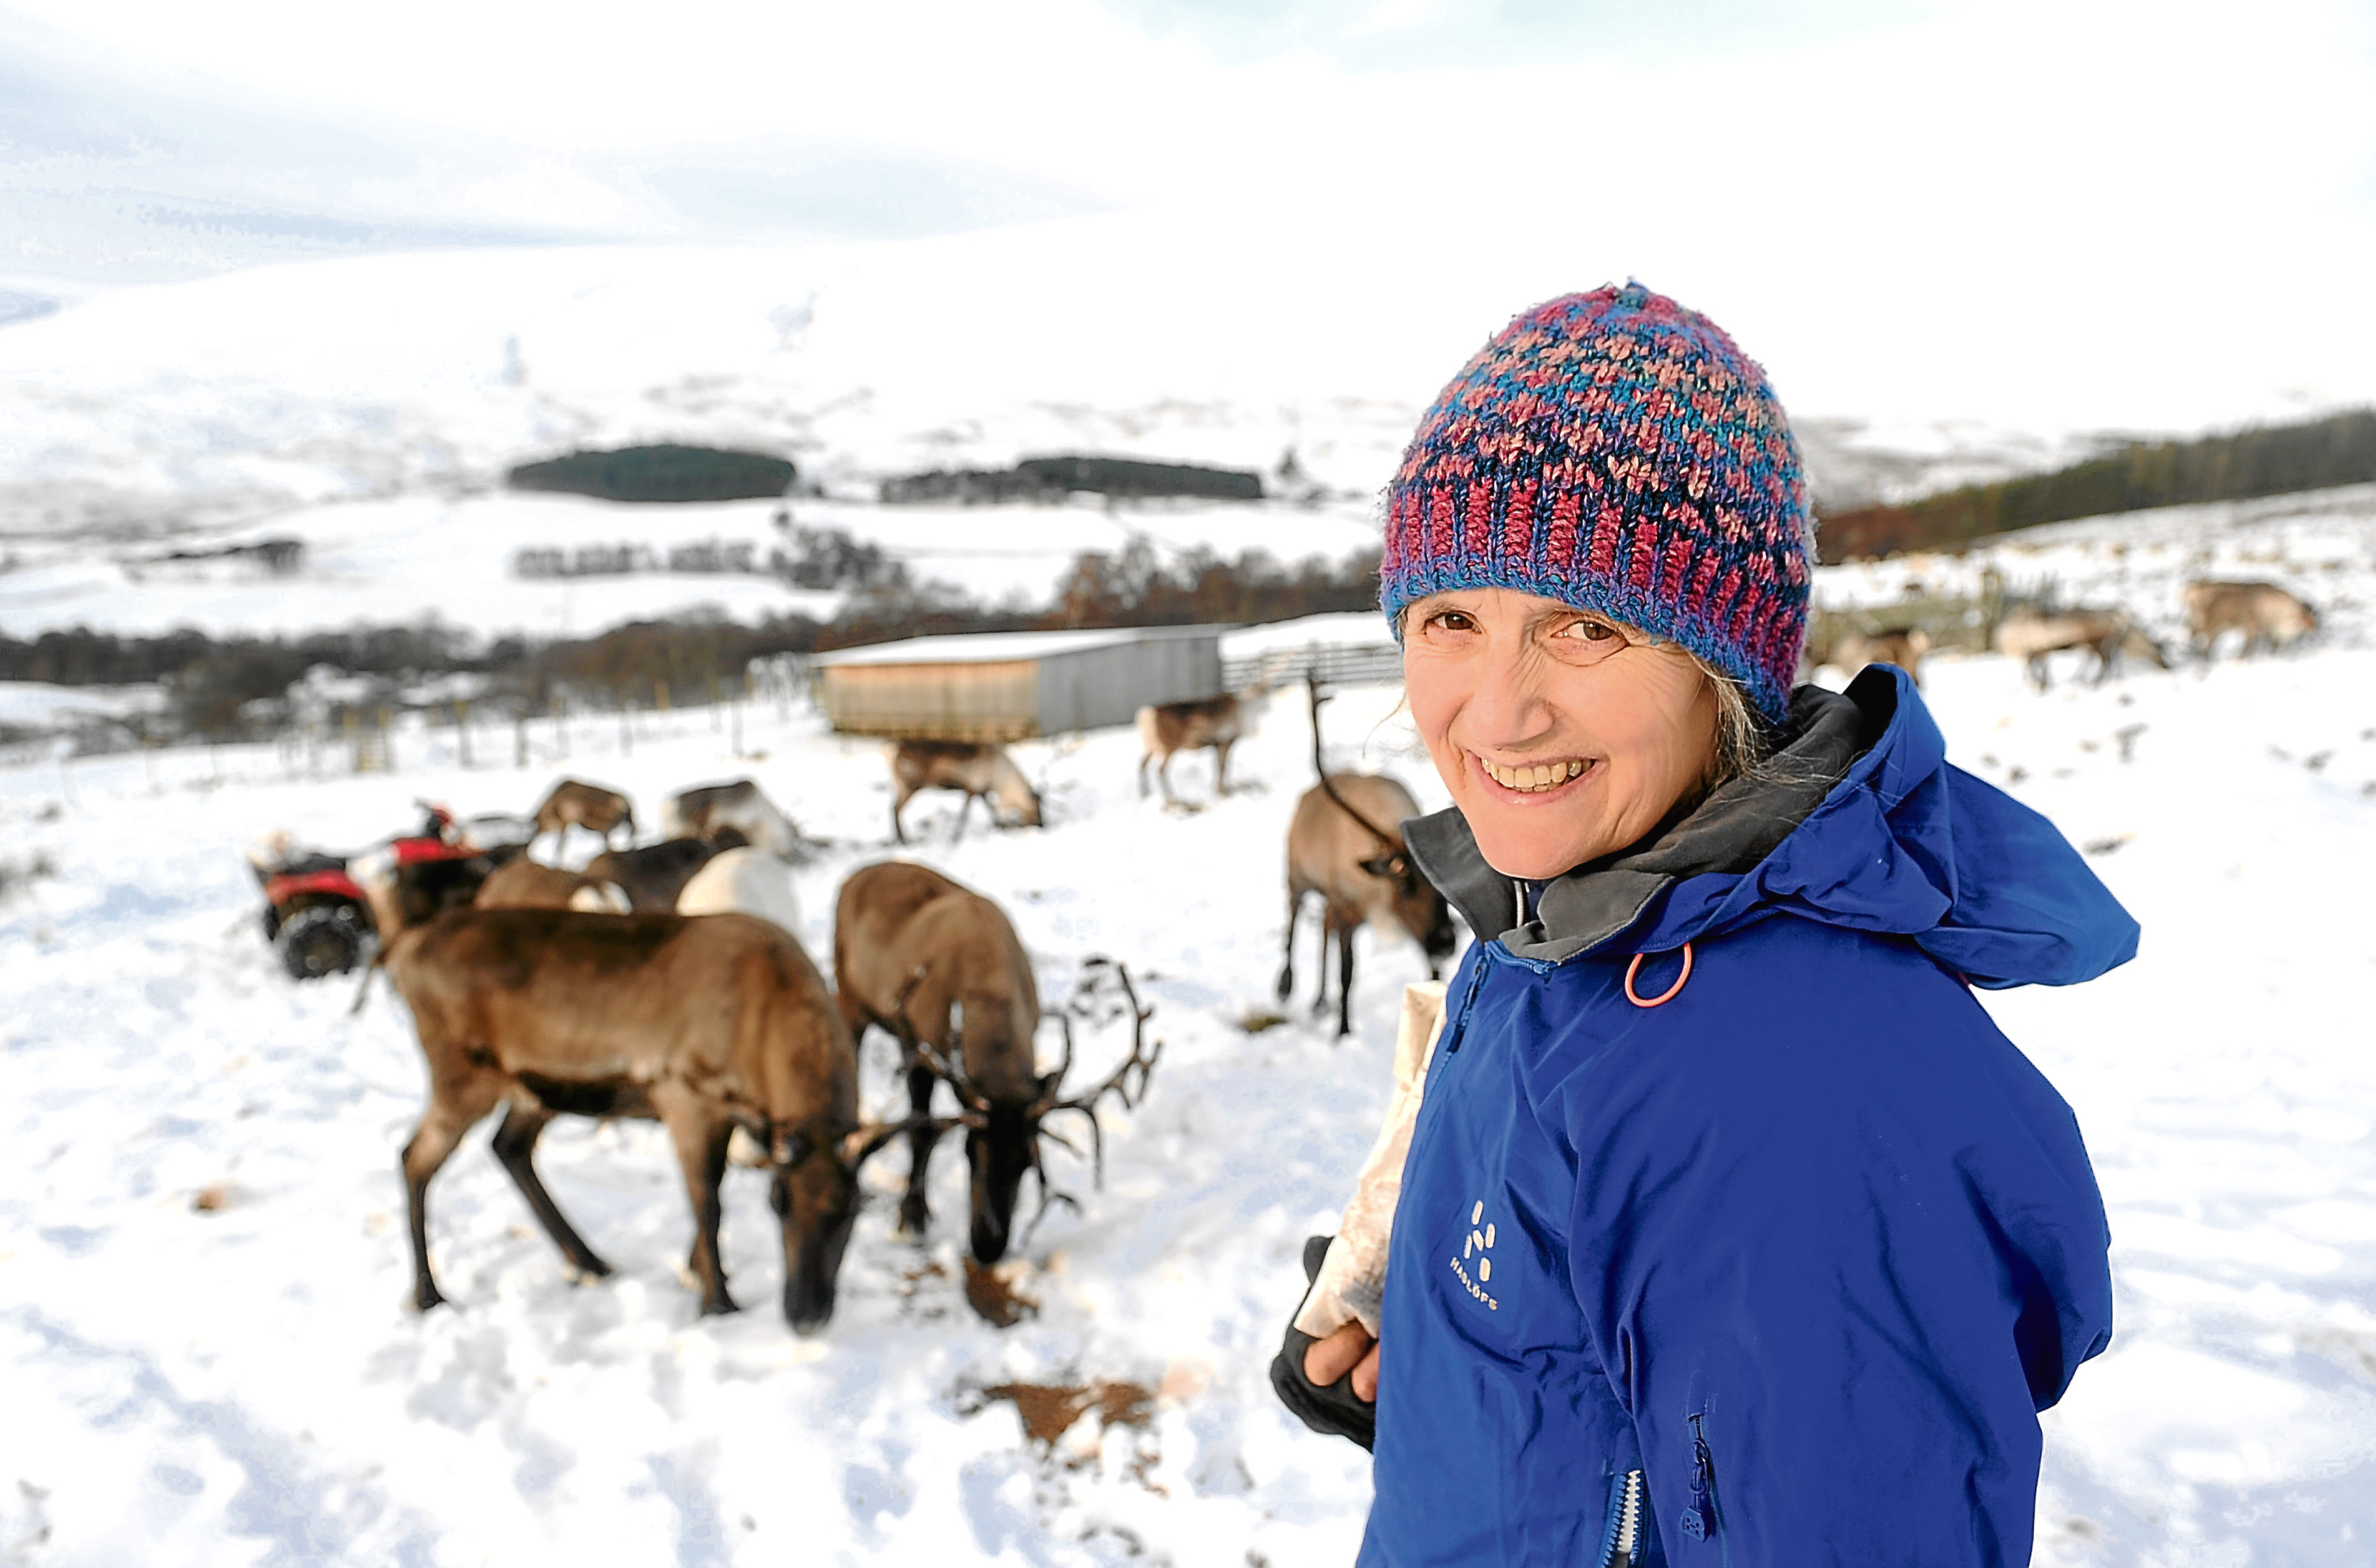 Tilly Smith with some of the reindeer